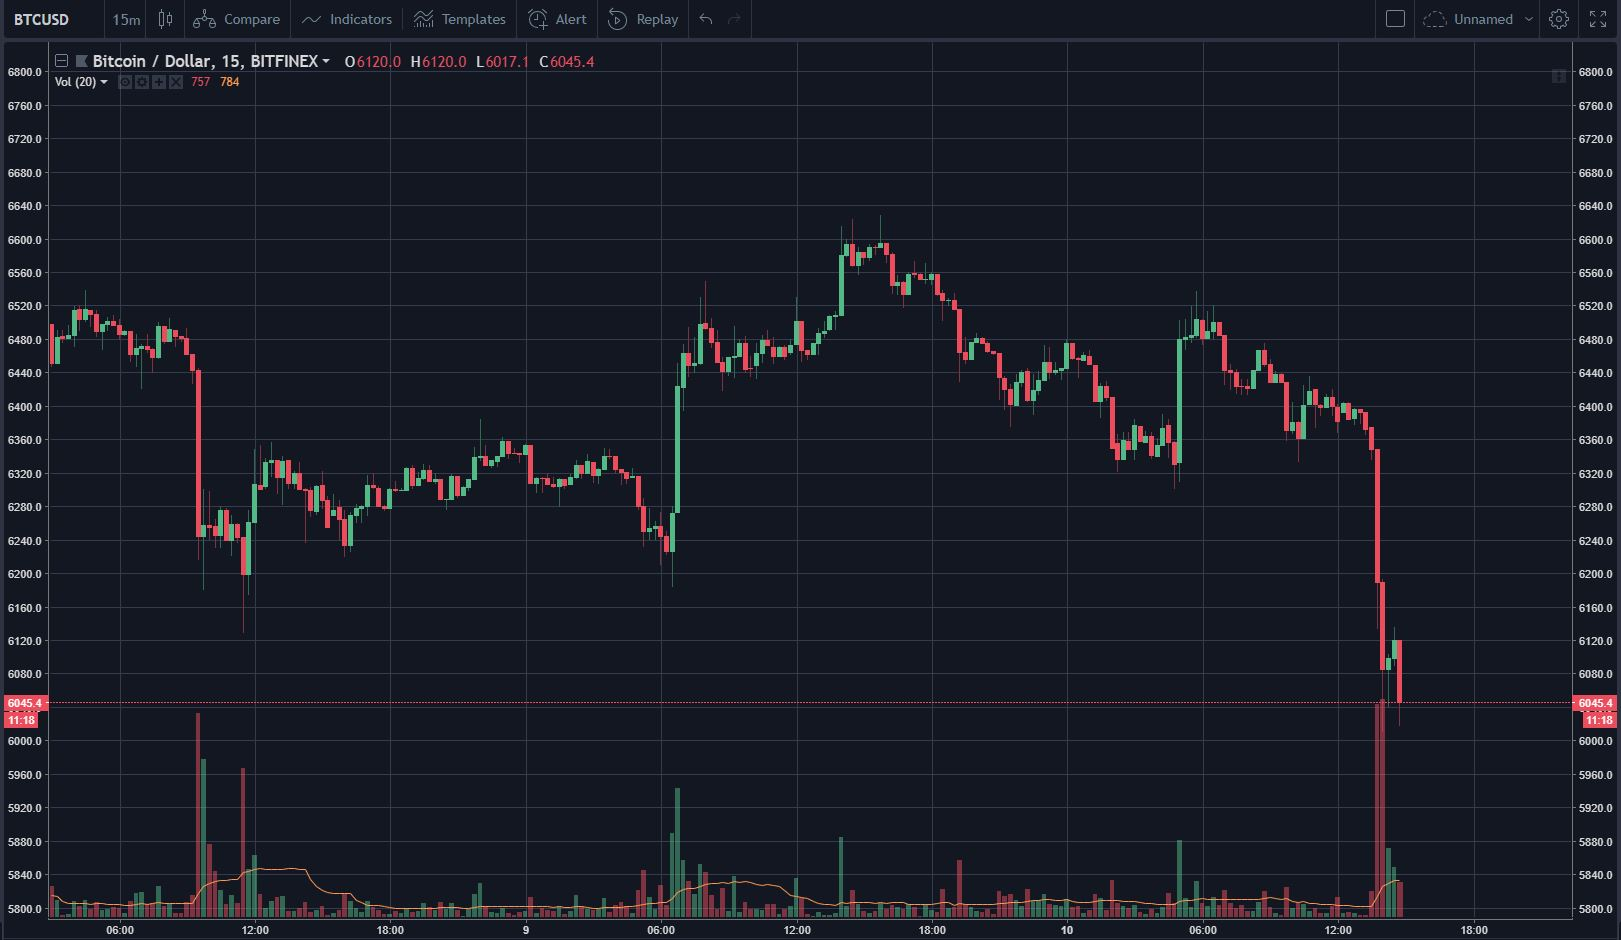 Bitcoin Falls to $6,050, Establishes New 1 Month Low 14